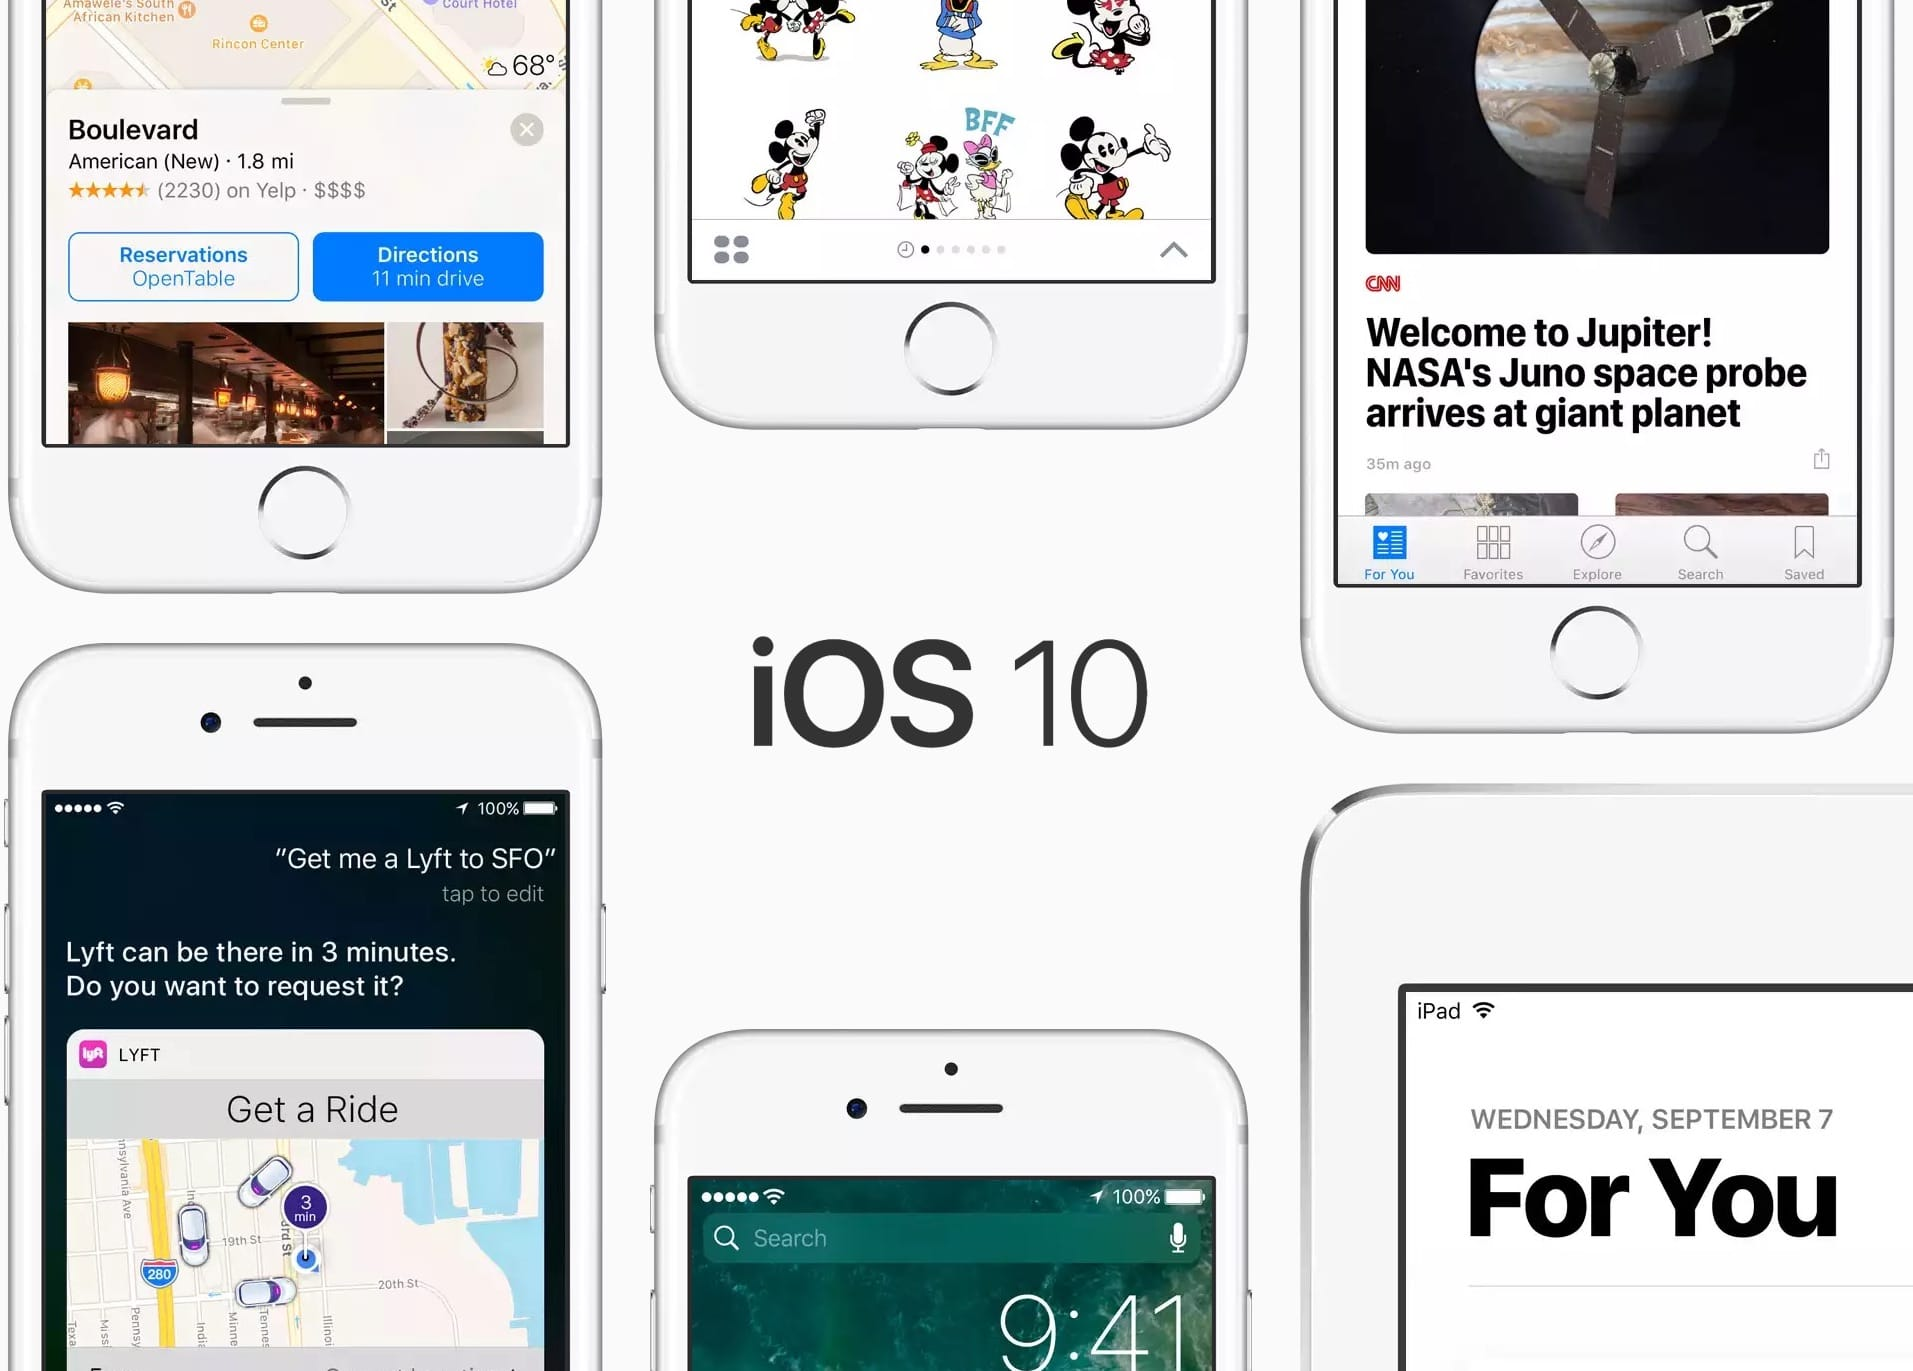 iOS10 Copyright © 2016 Apple Inc.